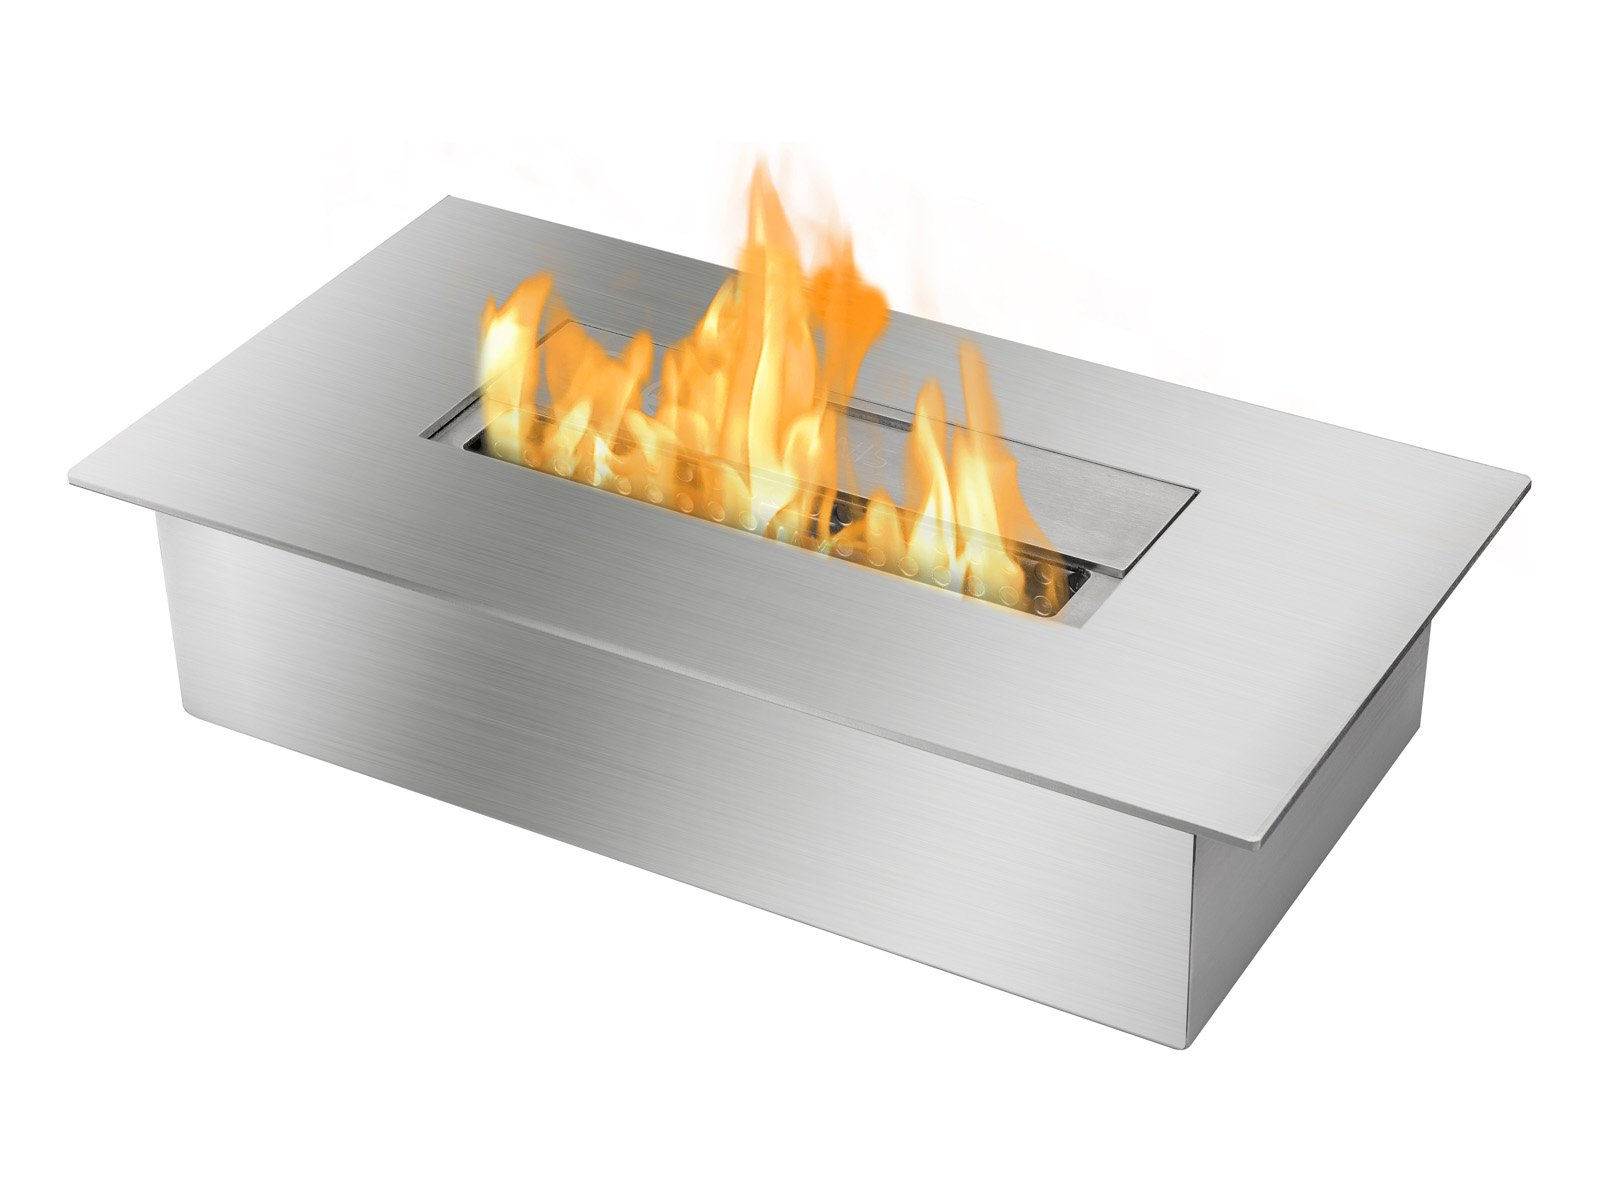 Ignis Ventless Bio Ethanol Fireplace Burner Insert EB1400 by Ignis Products